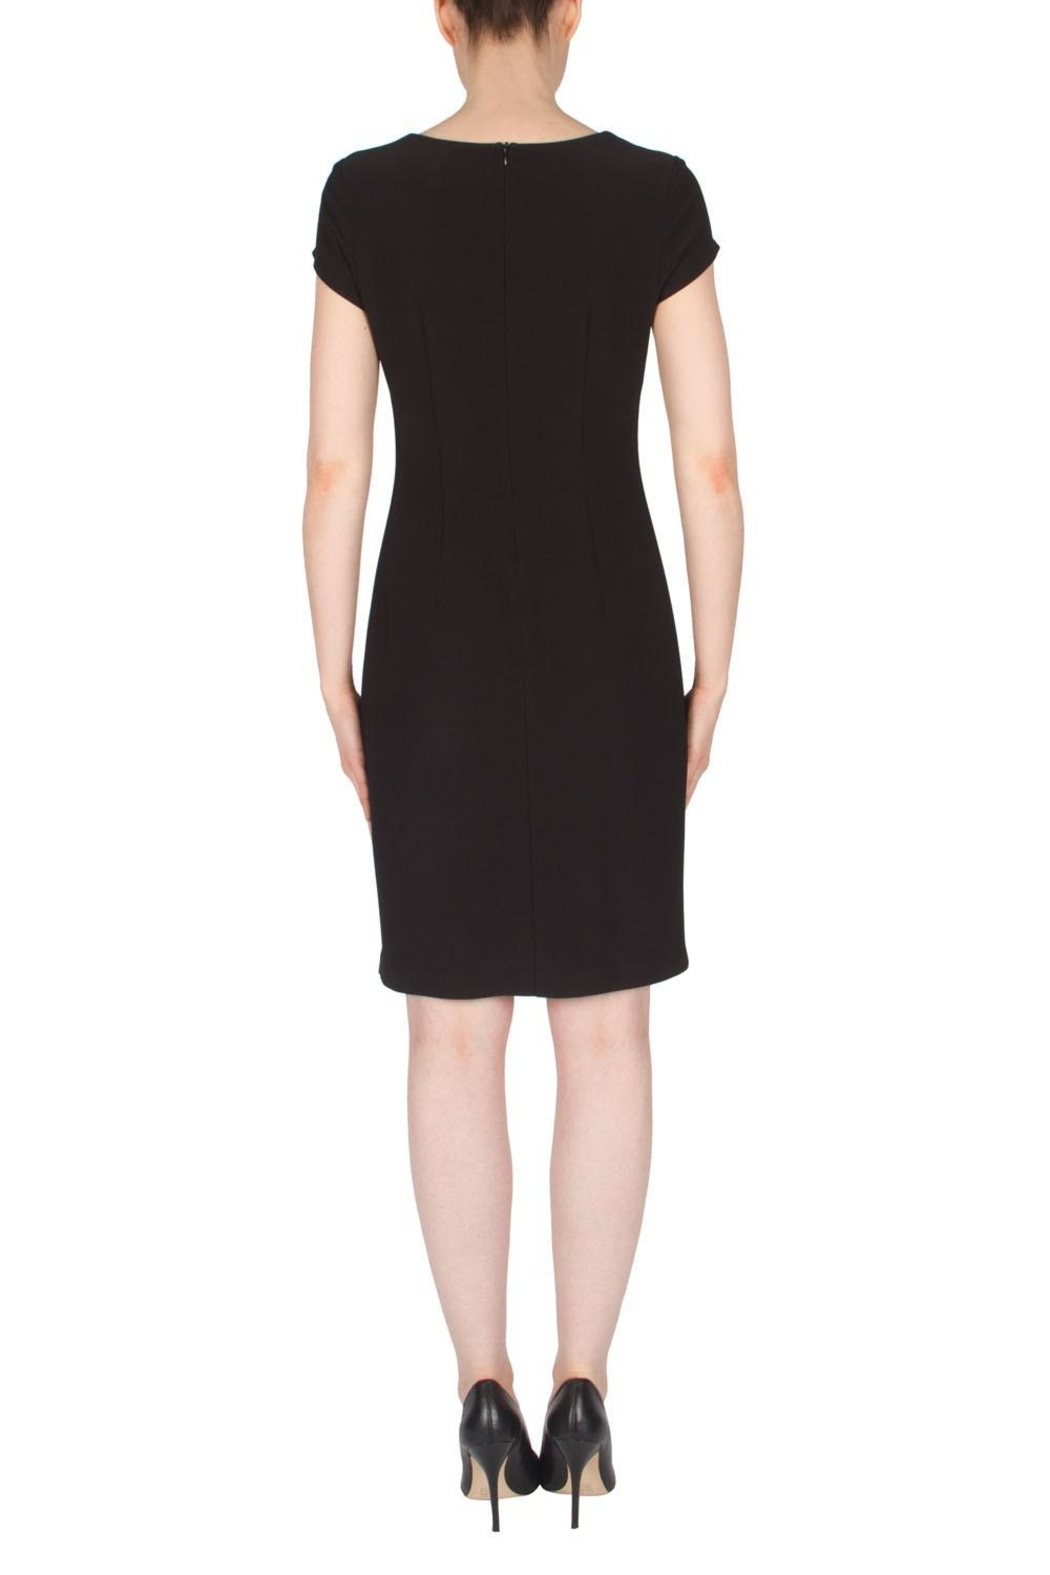 Joseph Ribkoff Color Block Dress - Side Cropped Image